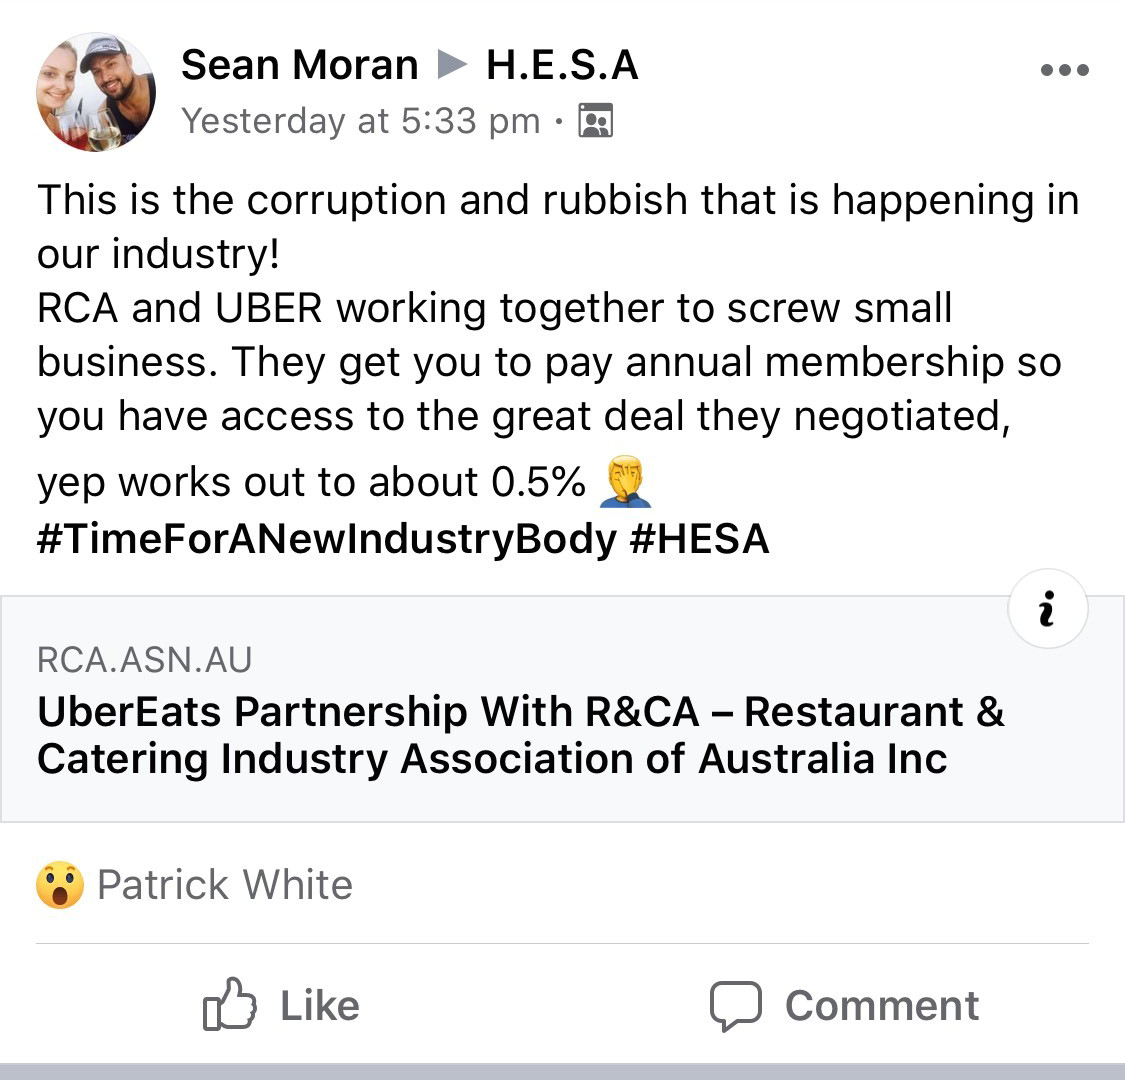 R&CA - Saviour or SELL OUT?